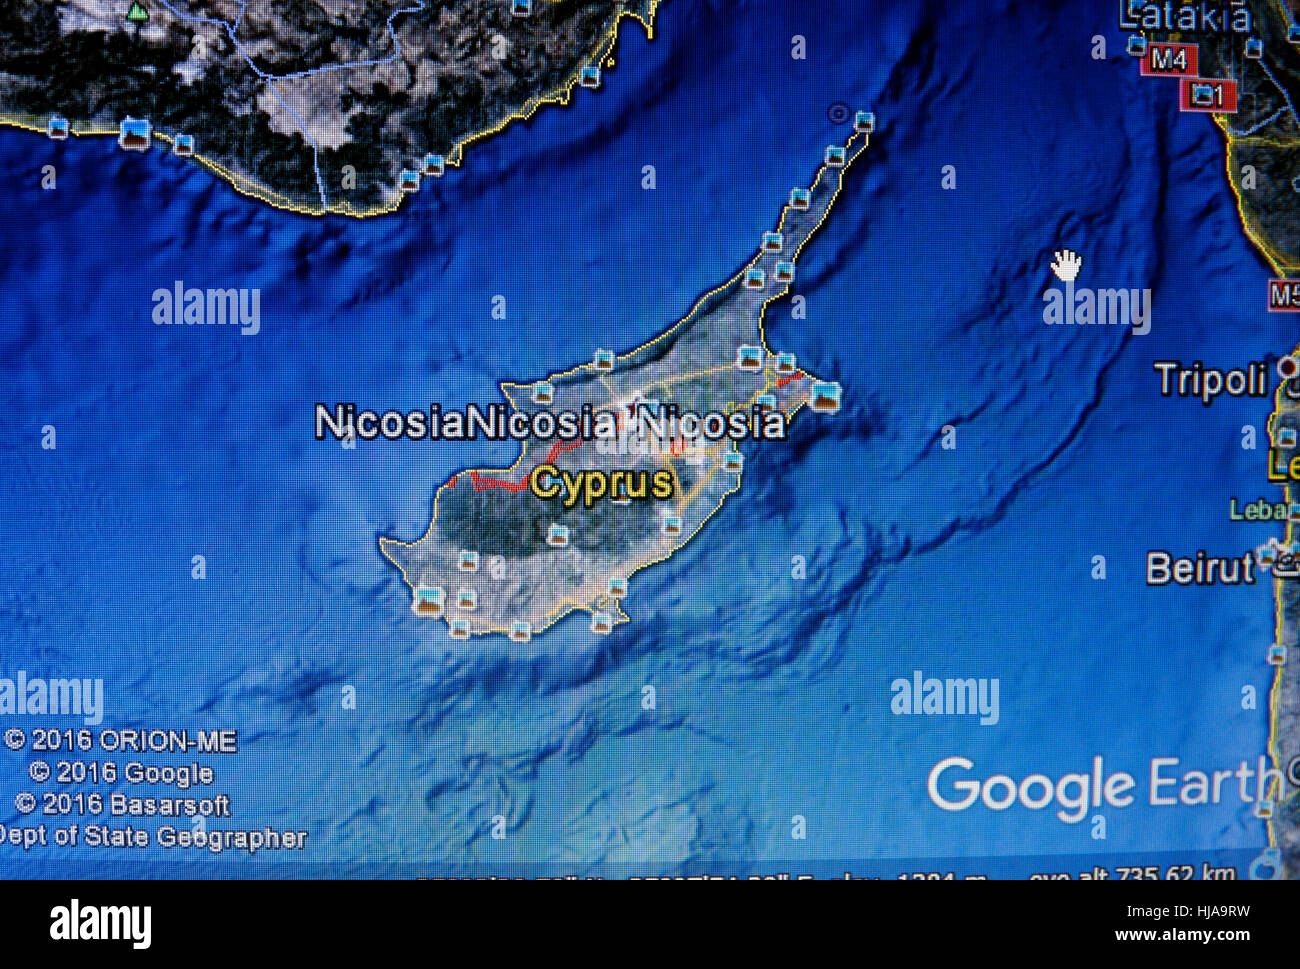 Google earth image of cyprus stock photo 131763629 alamy google earth image of cyprus gumiabroncs Gallery